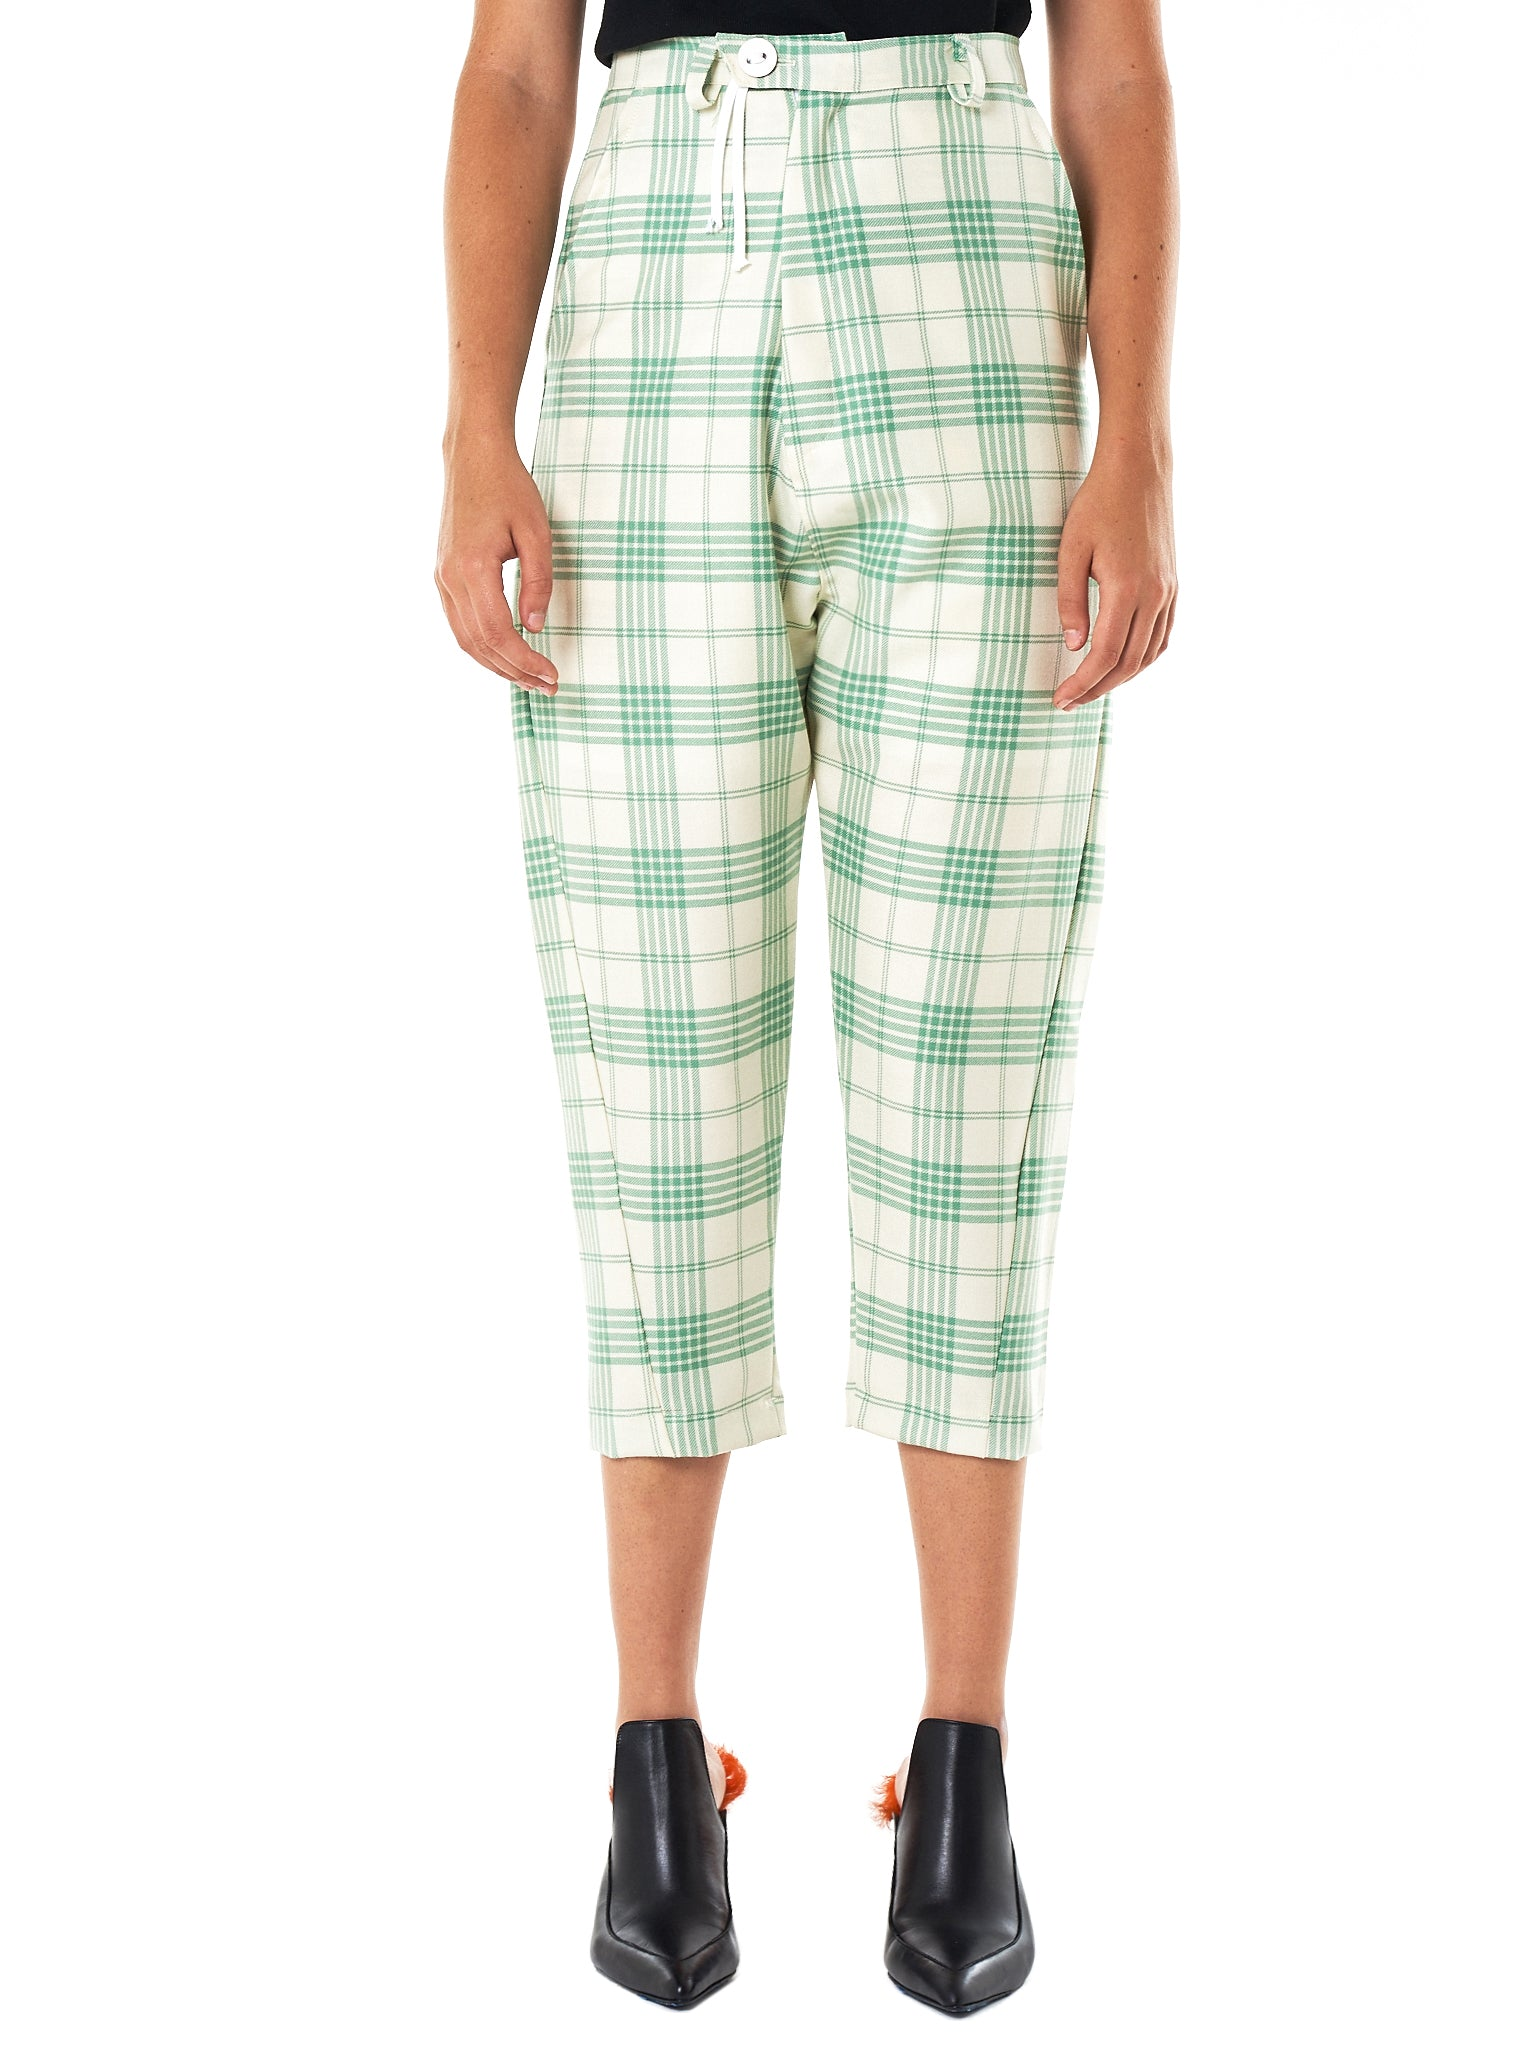 Barbara Bologna Cropped Trouser - Hlorenzo Front